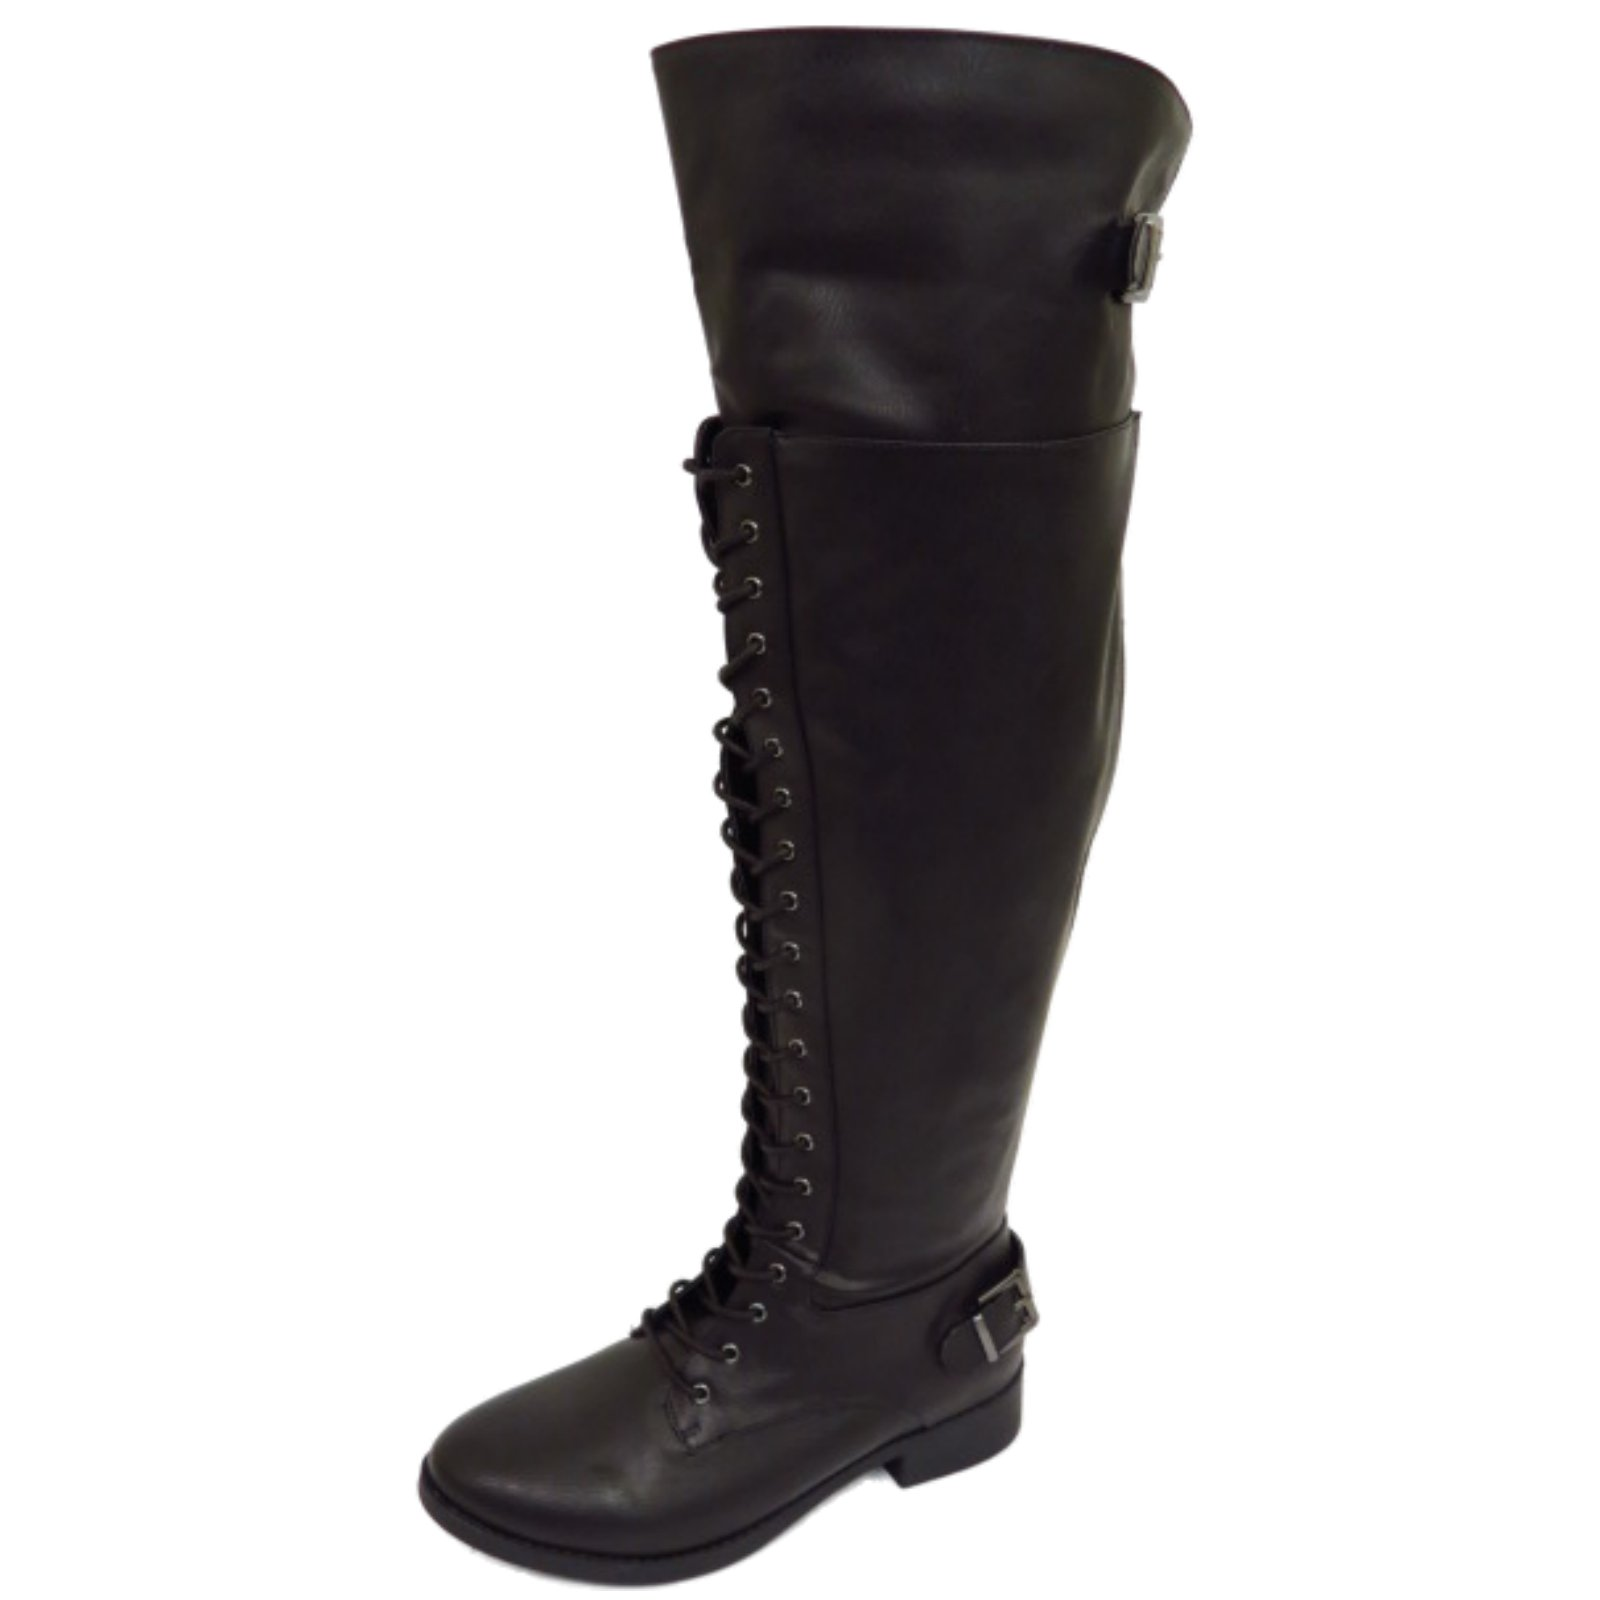 7f02bdc7f8c Sentinel WOMENS BLACK EXTRA WIDE CALF FIT LACE-UP BIKER KNEE-HIGH RIDING  TALL BOOTS